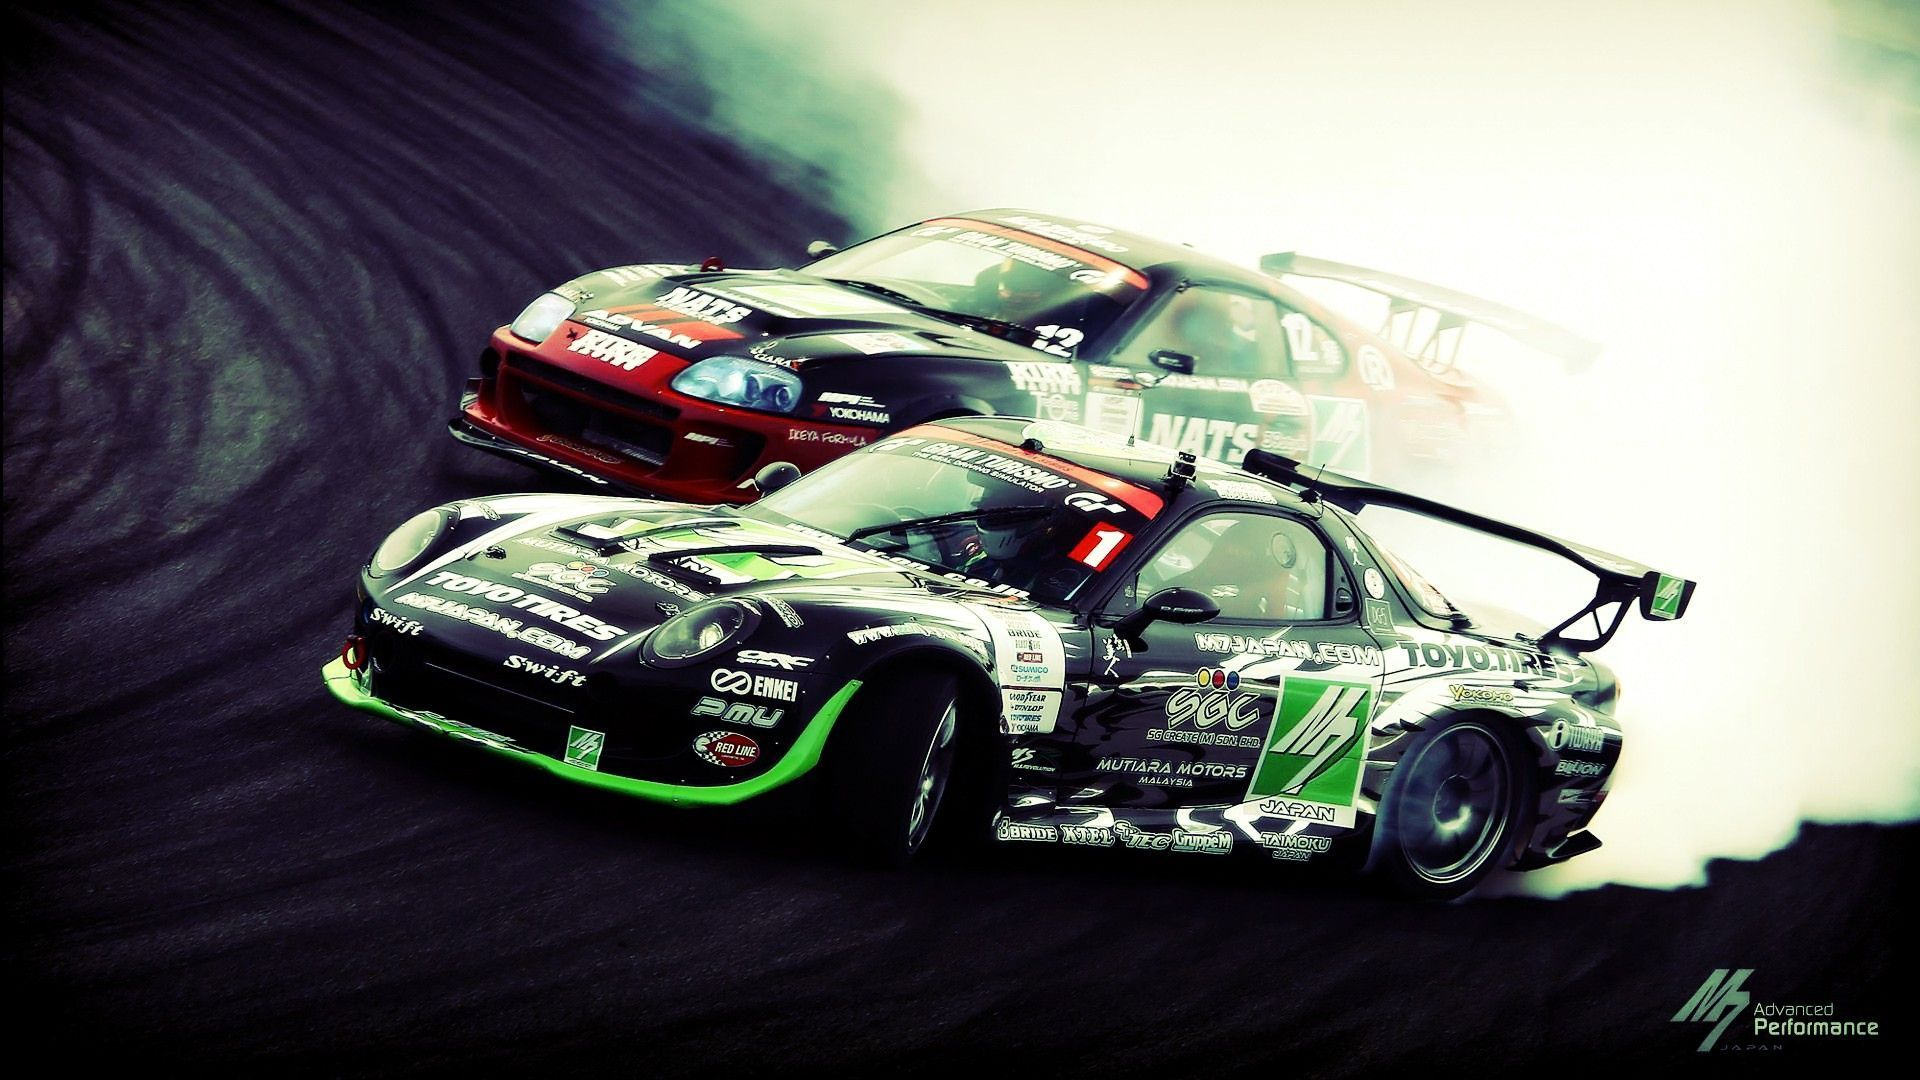 Supra Drift Wallpaper Desktop 0k2 Drifting Cars Car Wallpapers